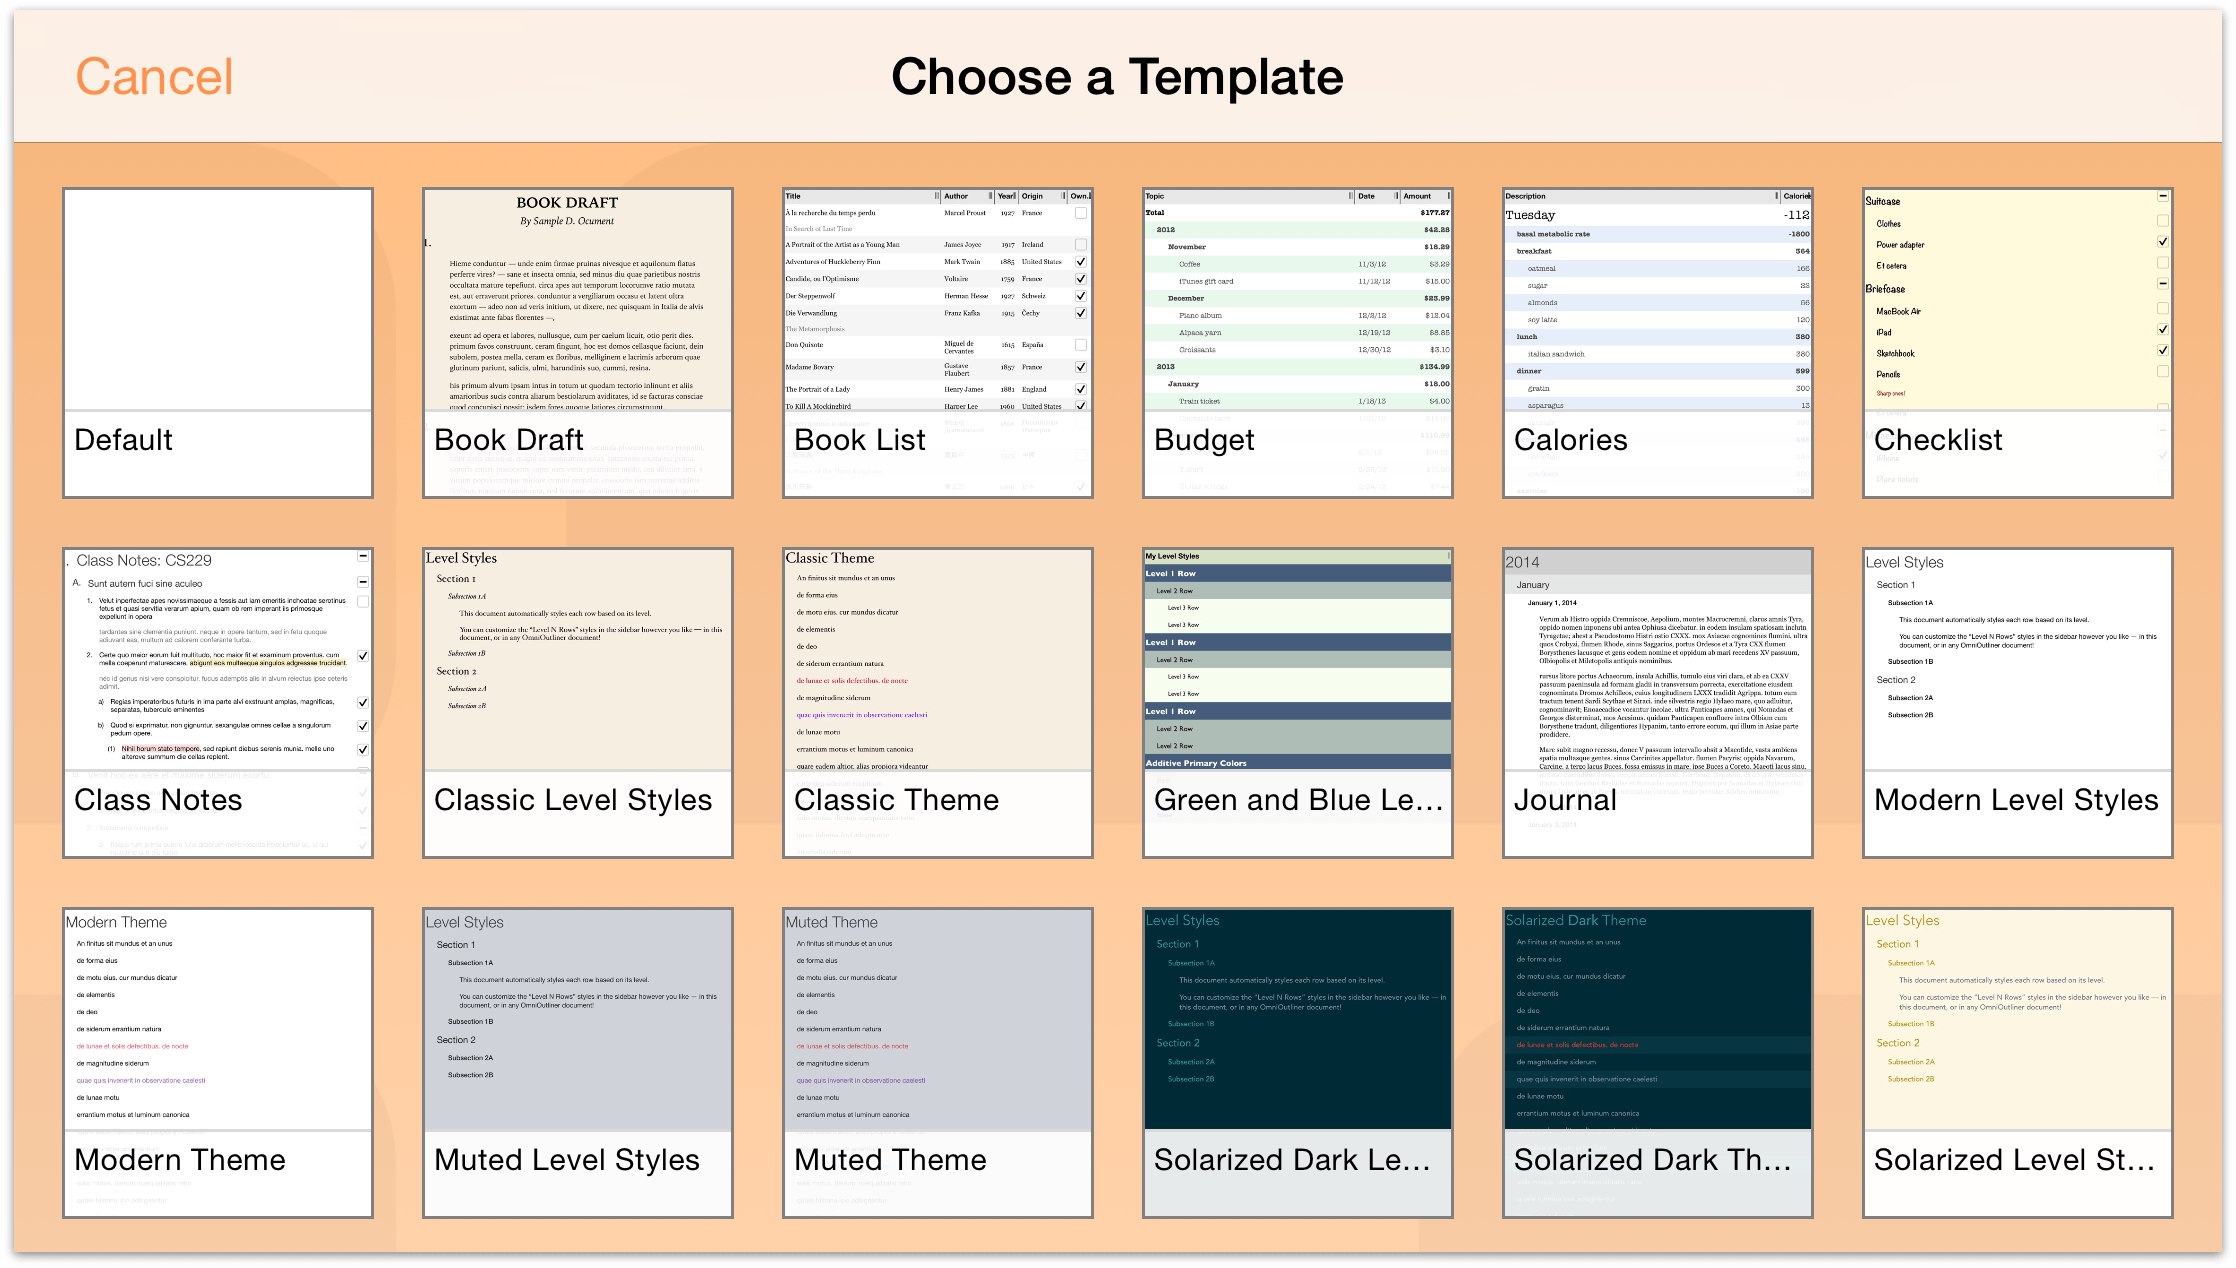 omnioutliner 2 3 for ios user manual working with templates and styles